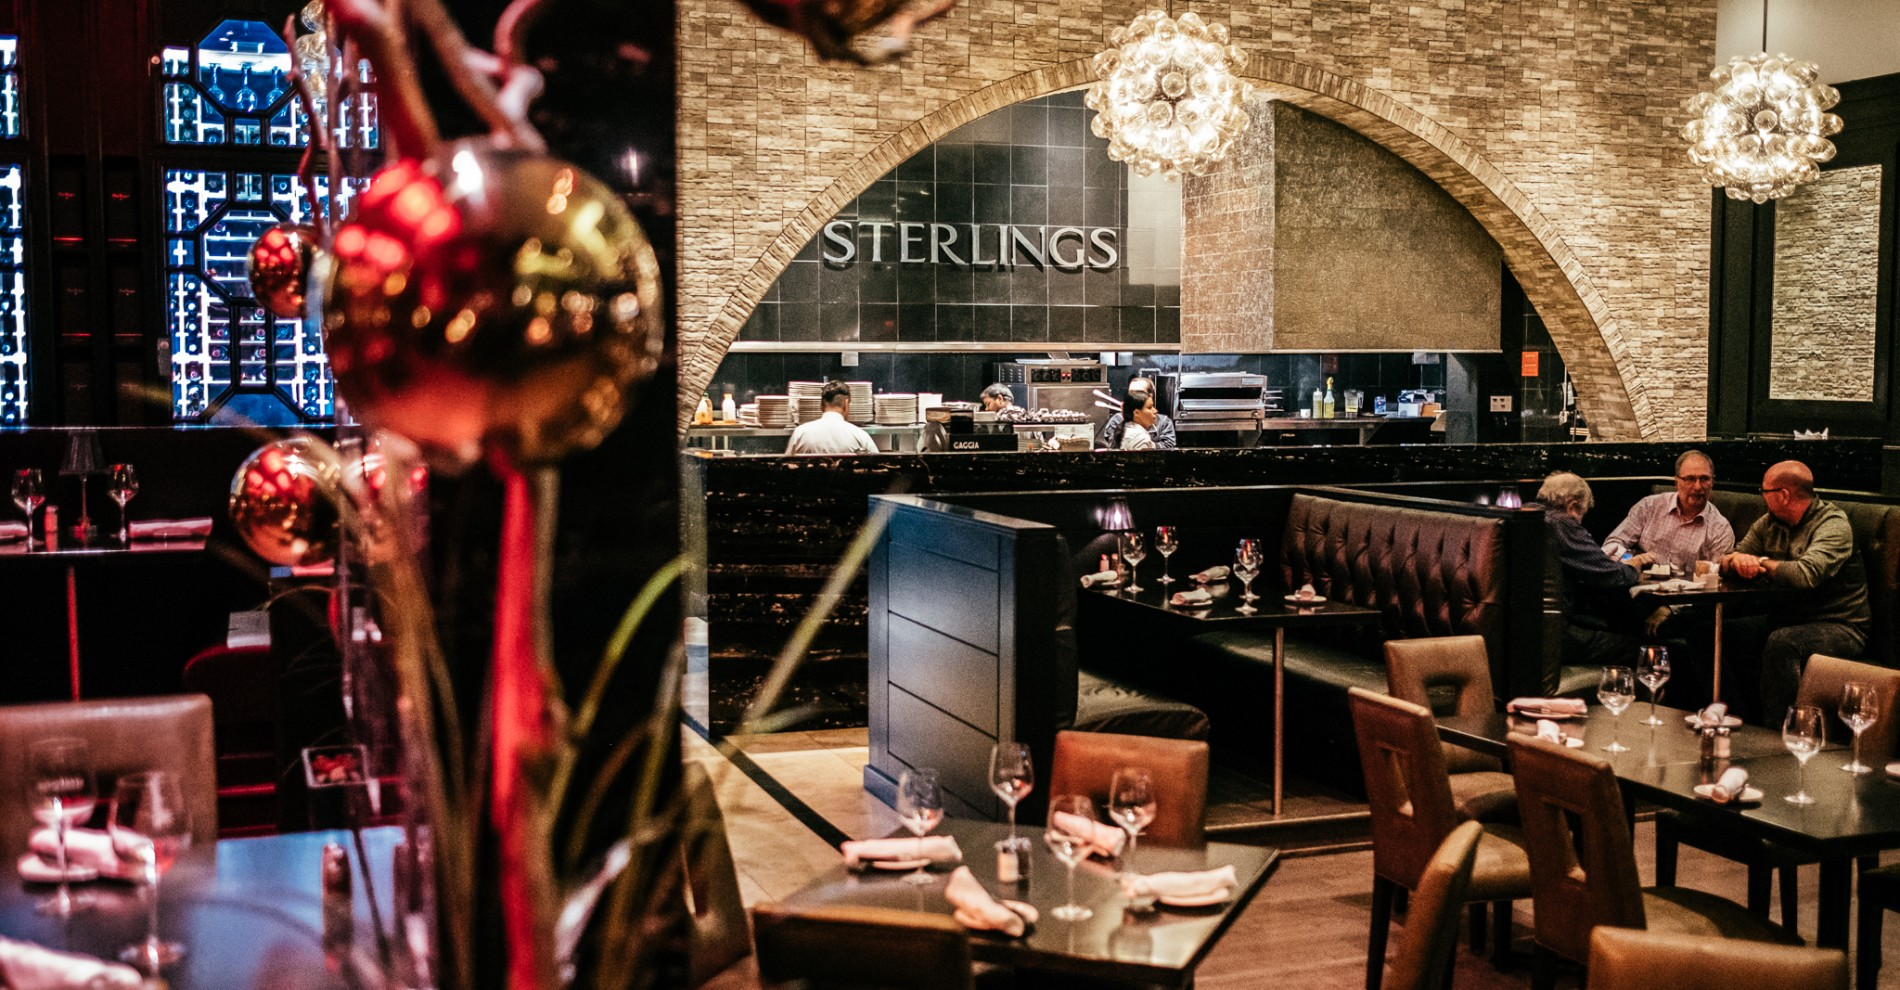 Details Sterlings Steakhouse 2018 125 Fr